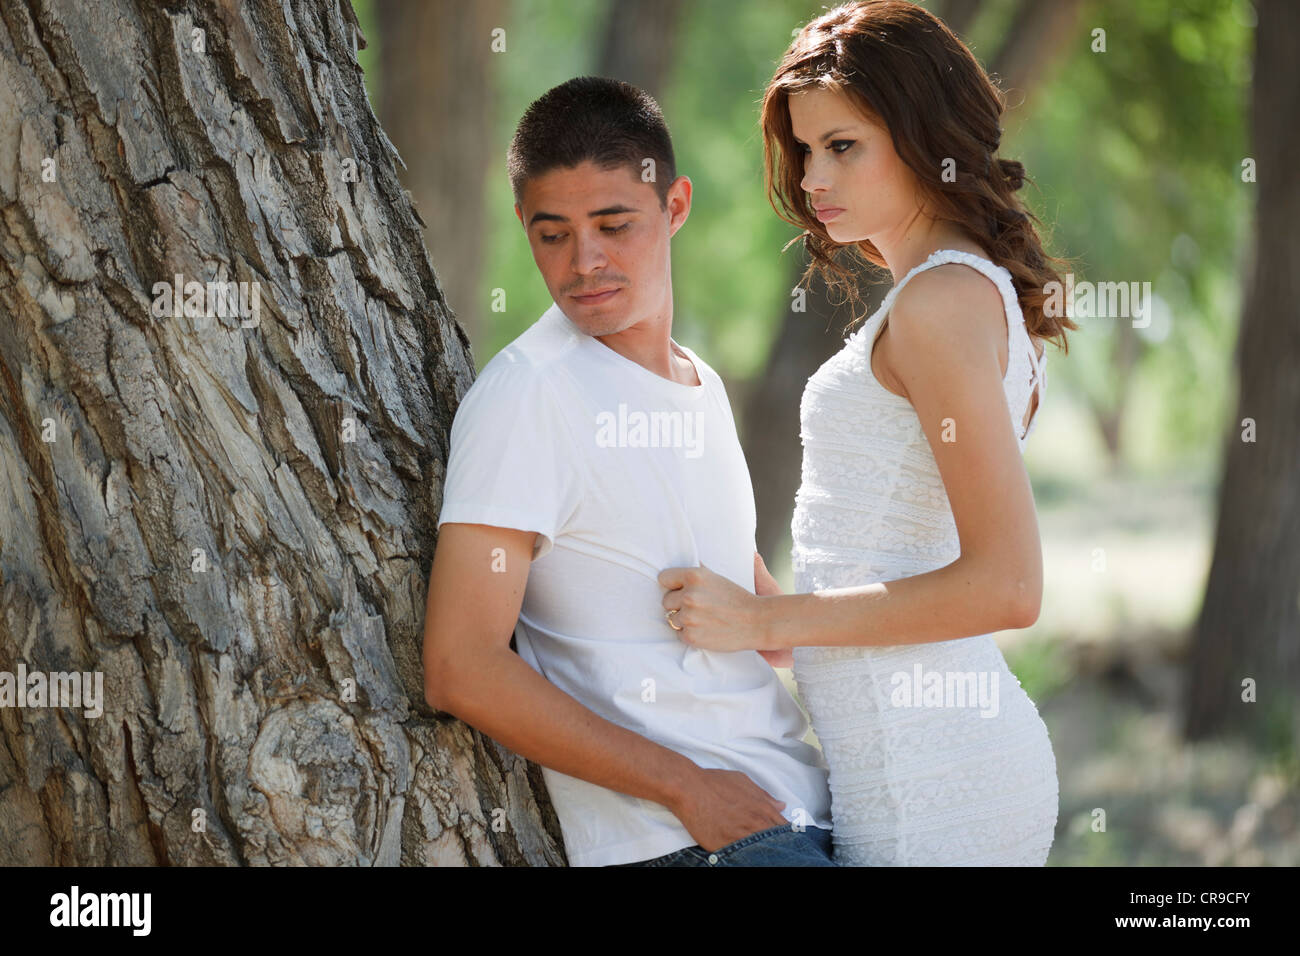 Young couple having communication issues outside in the woods Stock Photo